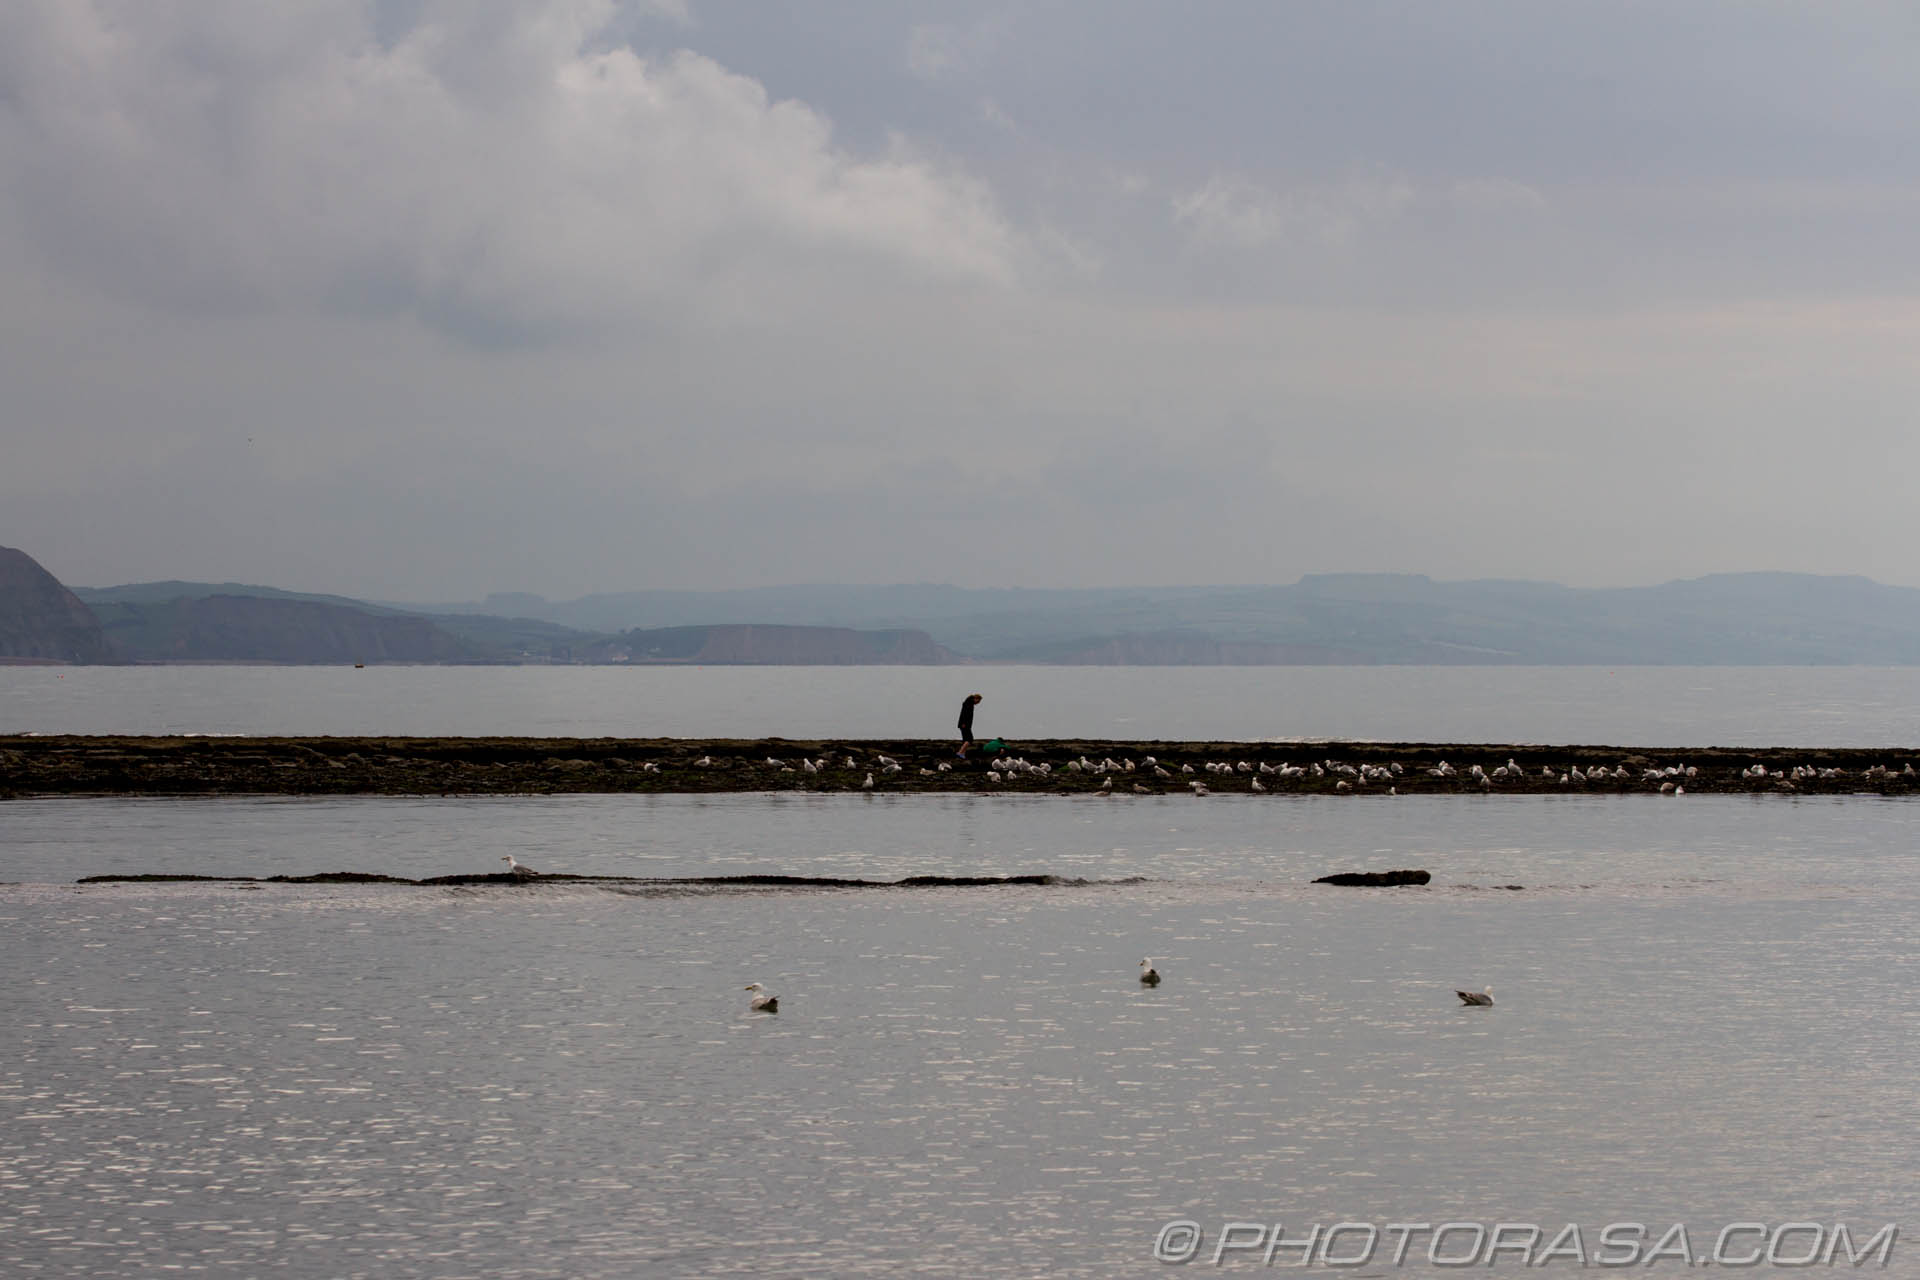 http://photorasa.com/sea-lyme-regis/lone-soul-by-the-sea/